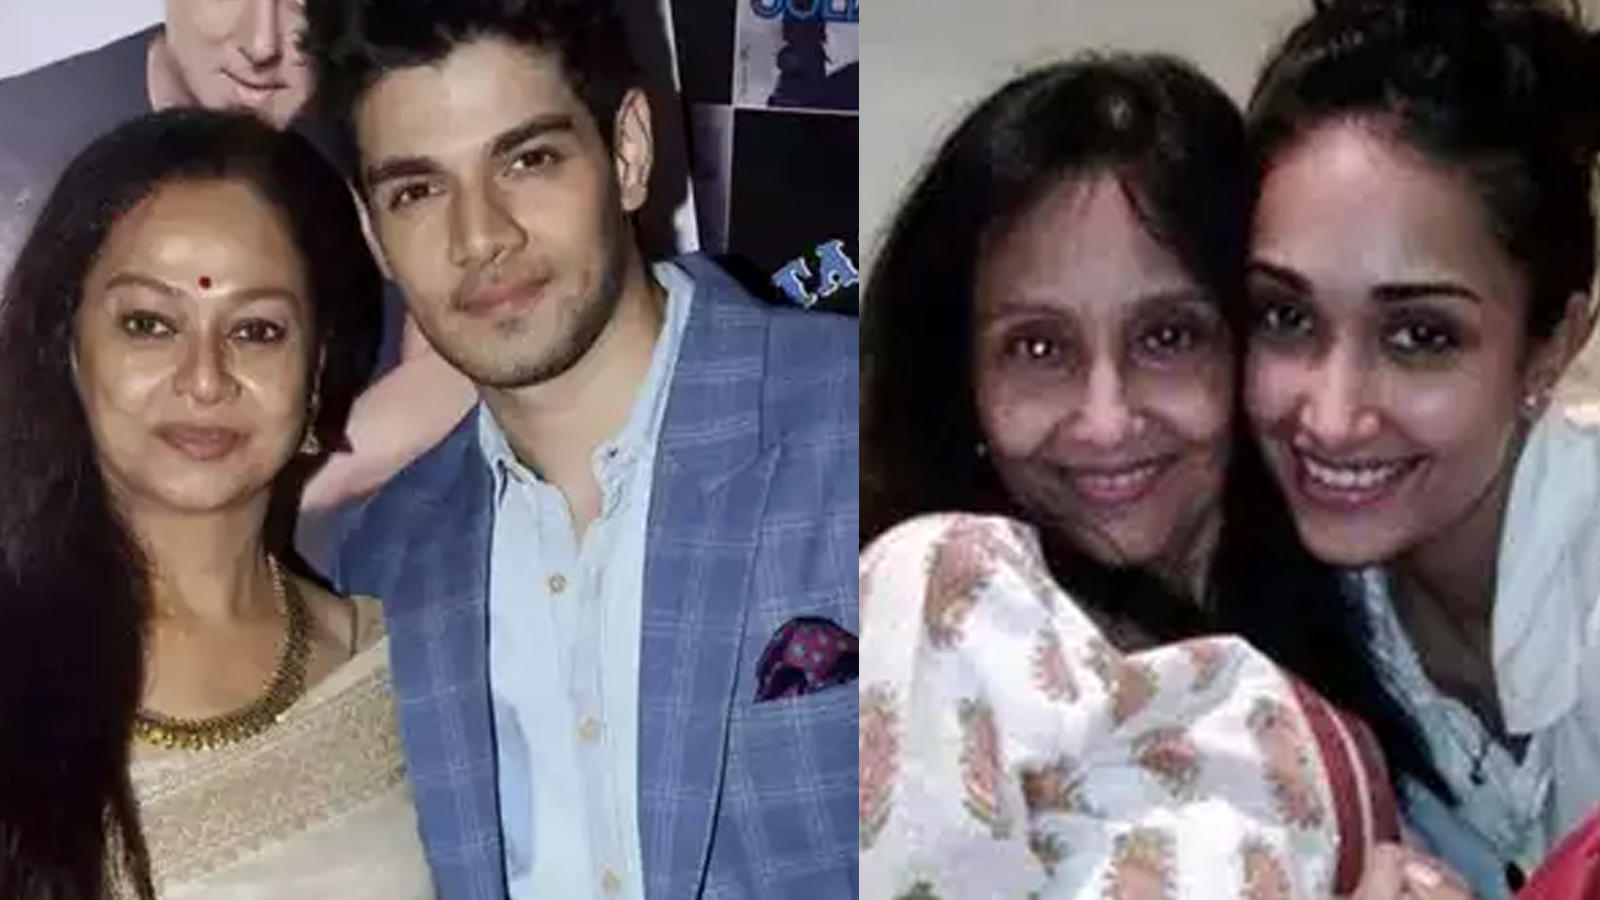 zarina-wahab-says-her-baccha-sooraj-pancholi-has-suffered-for-9-years-as-jiah-khans-mom-welcomes-courts-decision-to-move-the-actress-death-case-to-special-cbi-court